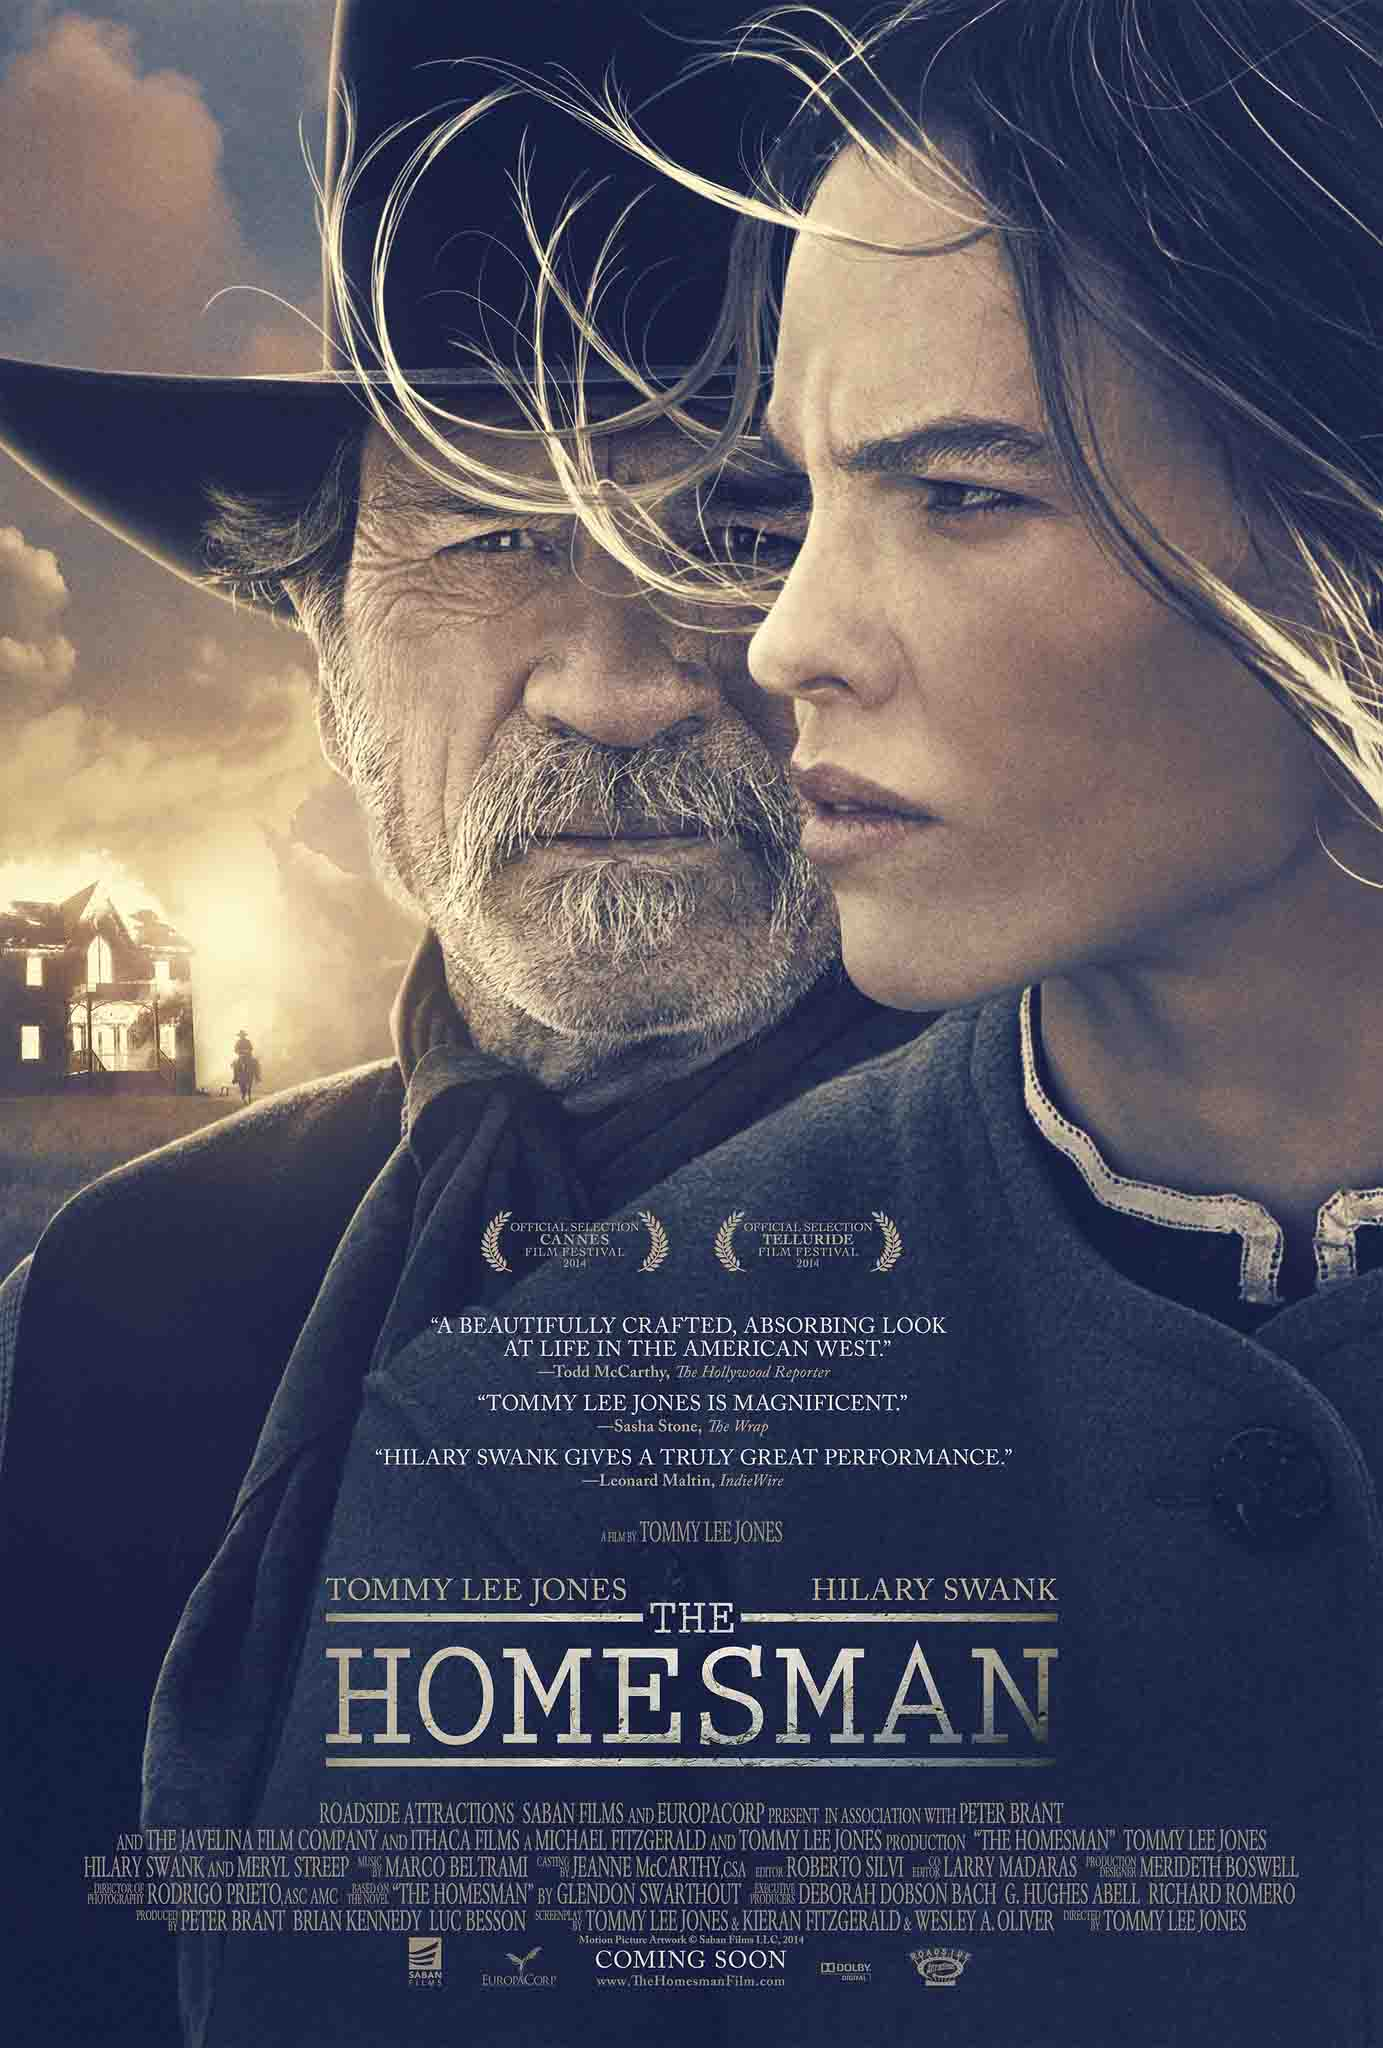 M2014018CIM 送乡人 the-homesman (2014) _2b6060cb.jpg